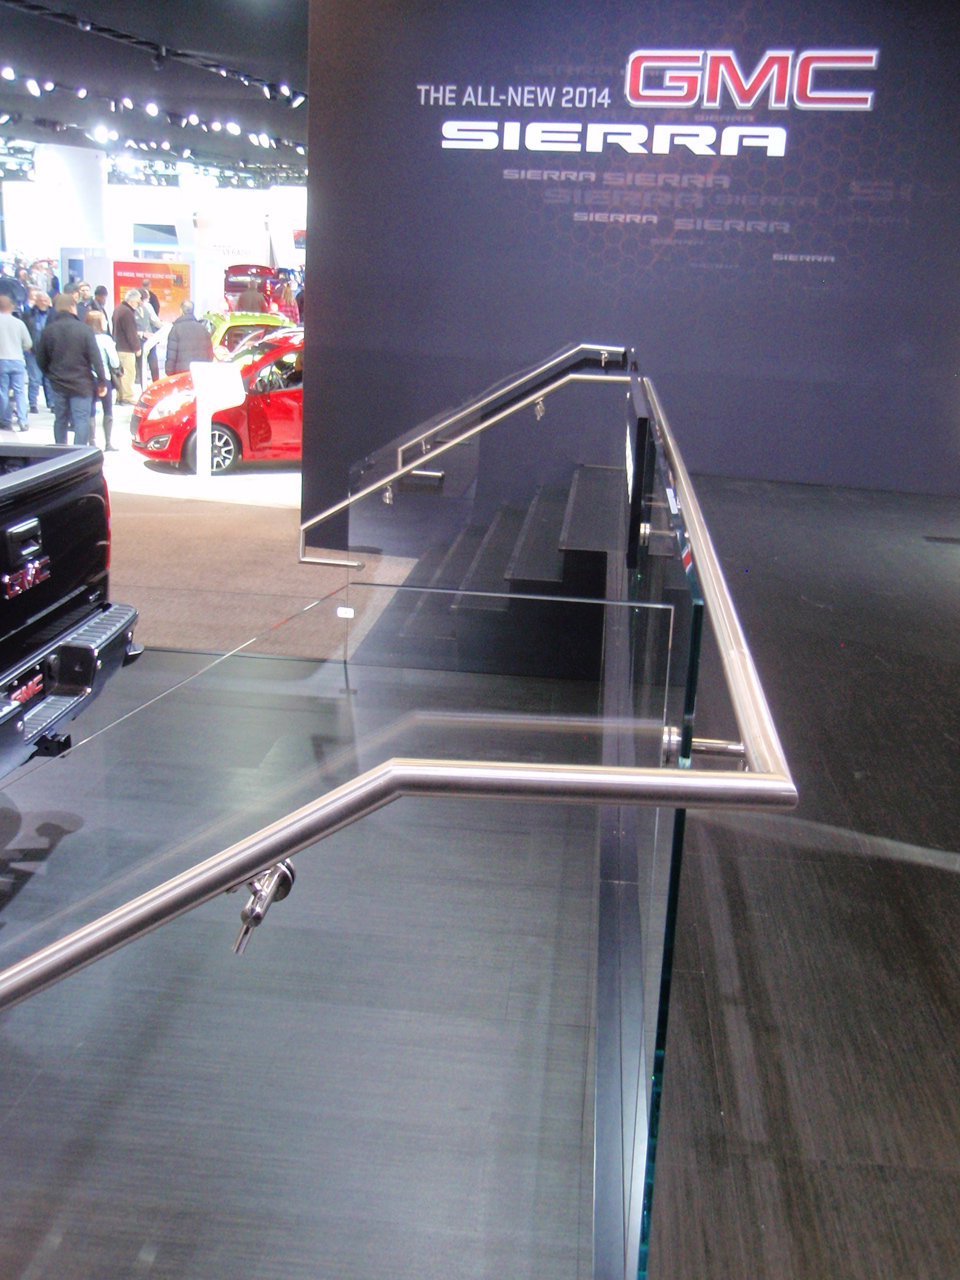 2014 General Motors Corp. International Auto Show Display, Glass & Stainless Steel Guard Railings.